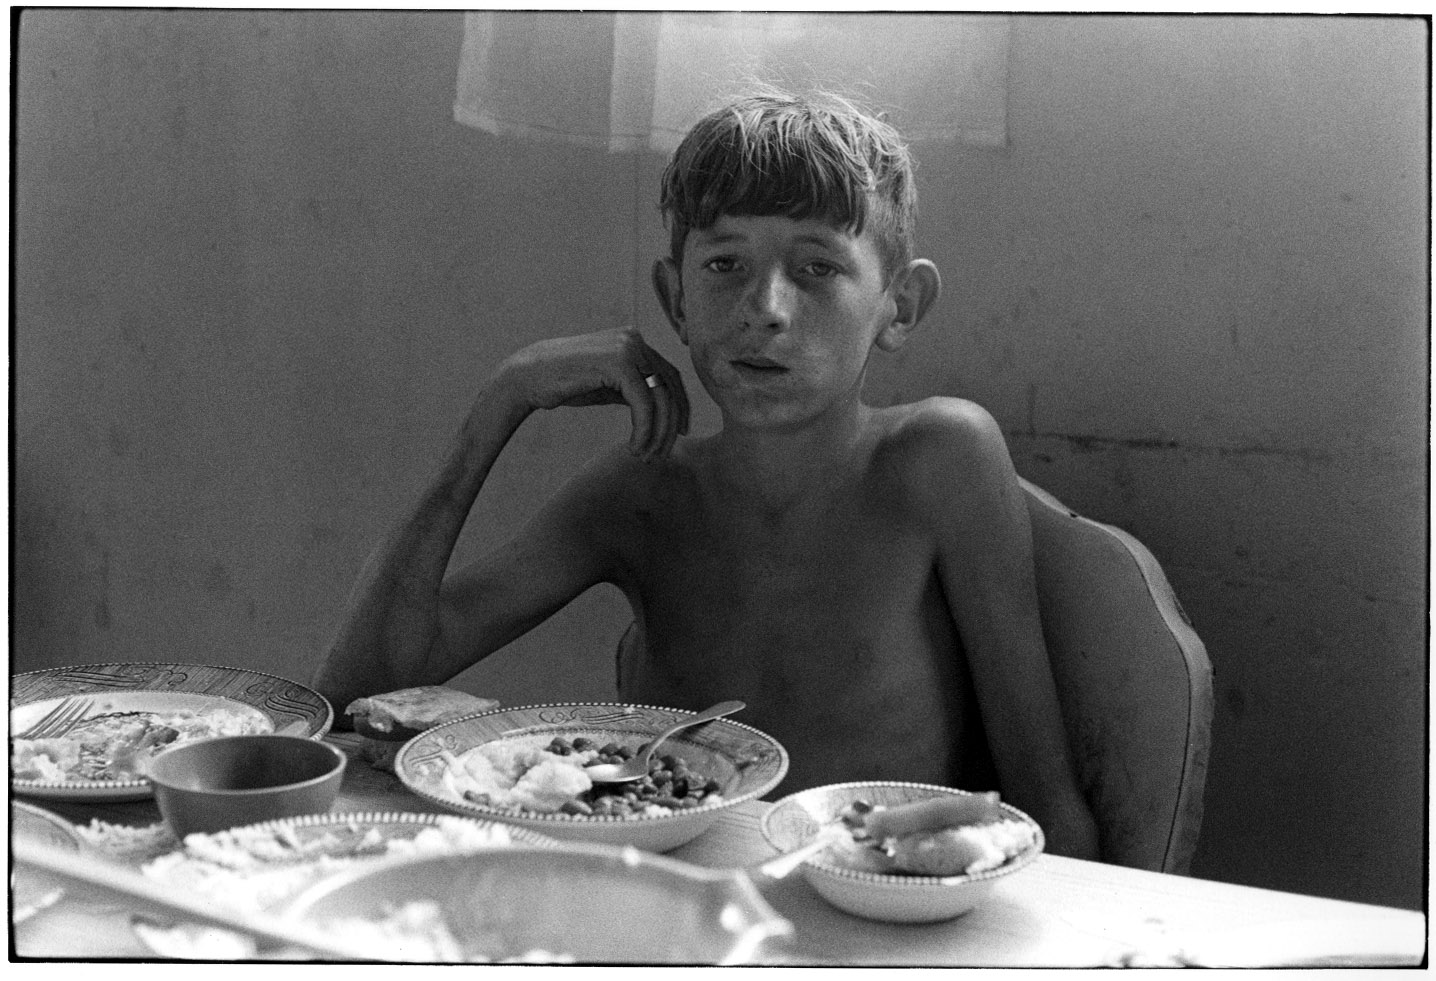 """Boy at dinner table"" - William Gedney, 1972"